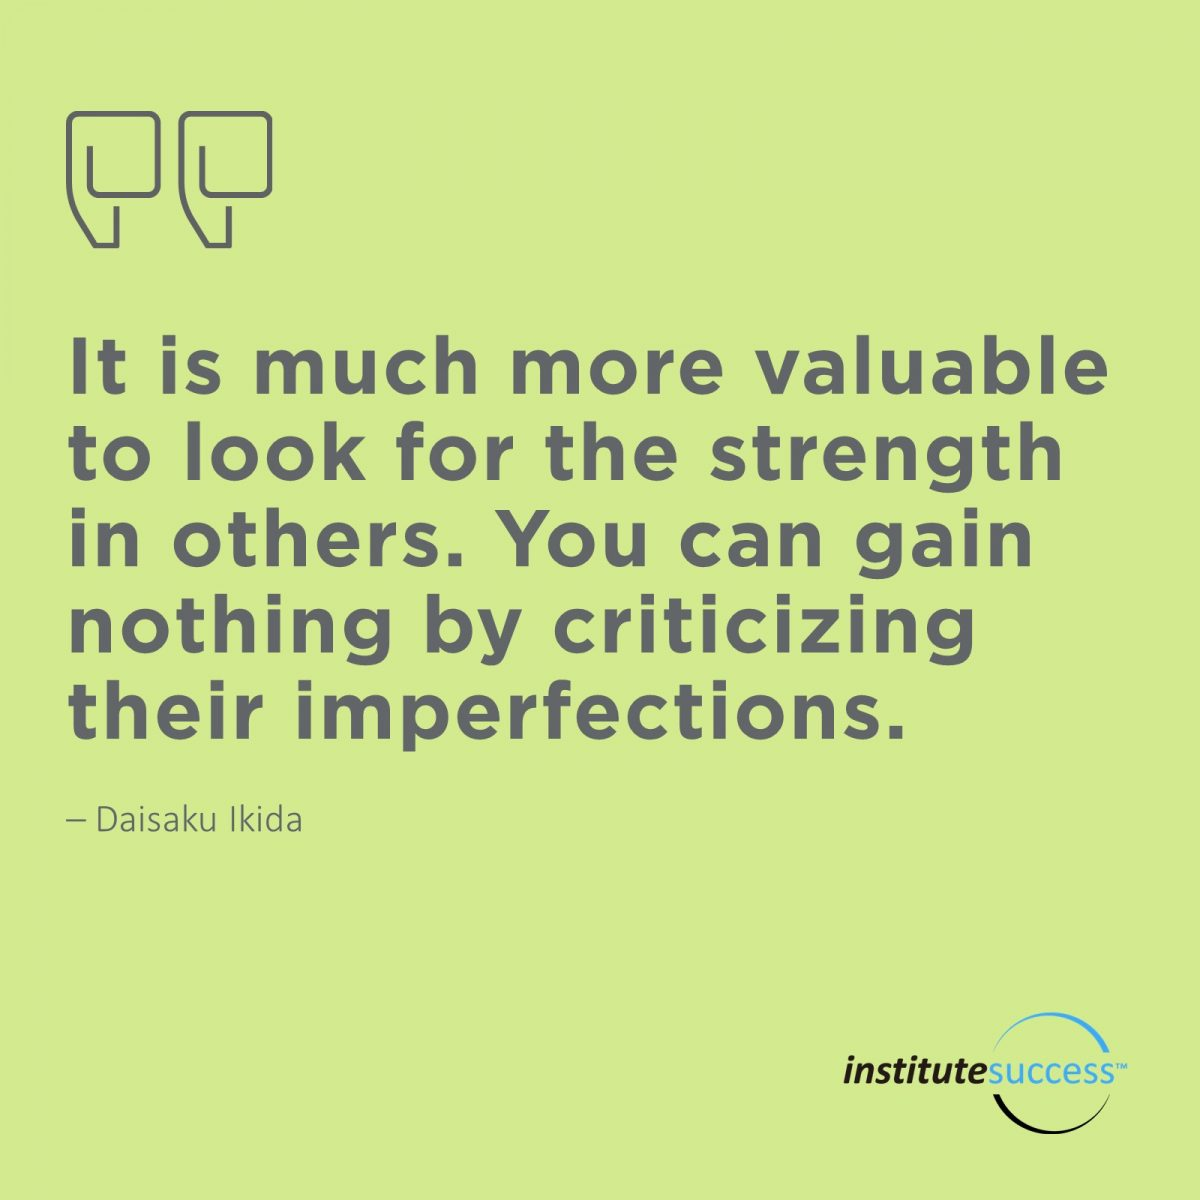 It is much more valuable to look for the strength in others. You can gain nothing by criticizing their imperfections. – Daisaku Ikida